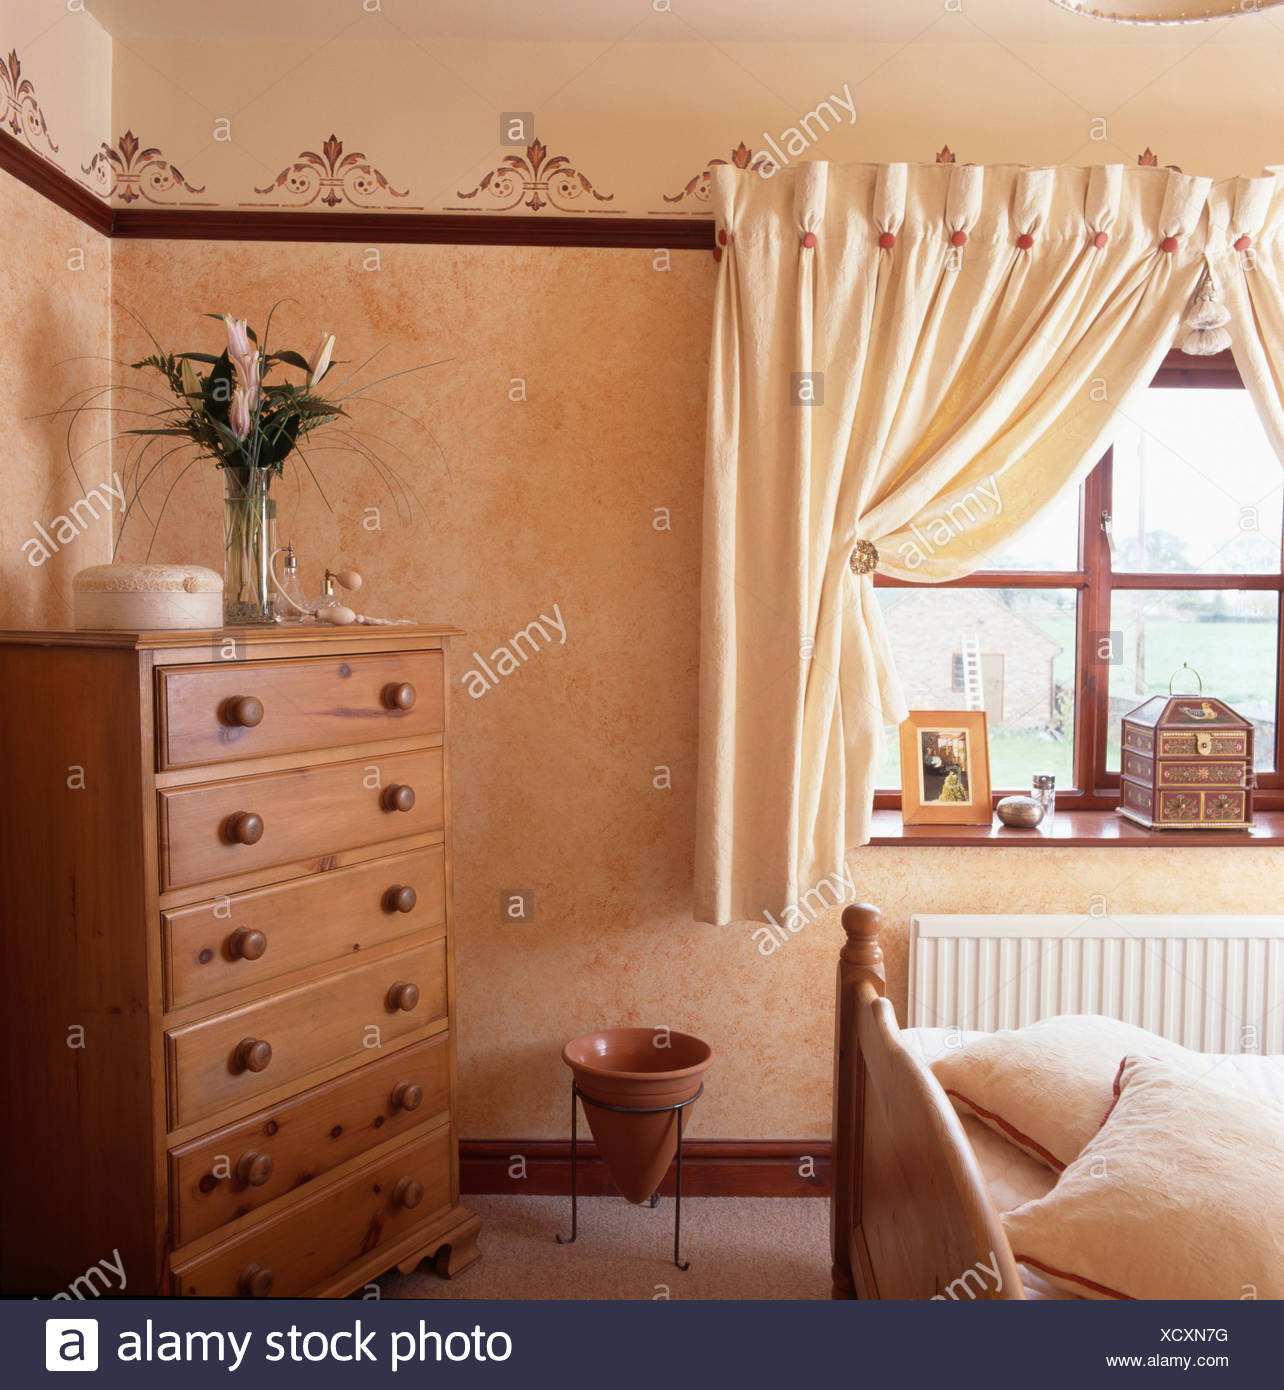 Chest Of Drawers In Corner Of Small Bedroom With Cream Curtains At Window And Stenciled Border On Walls Stock Photo Alamy